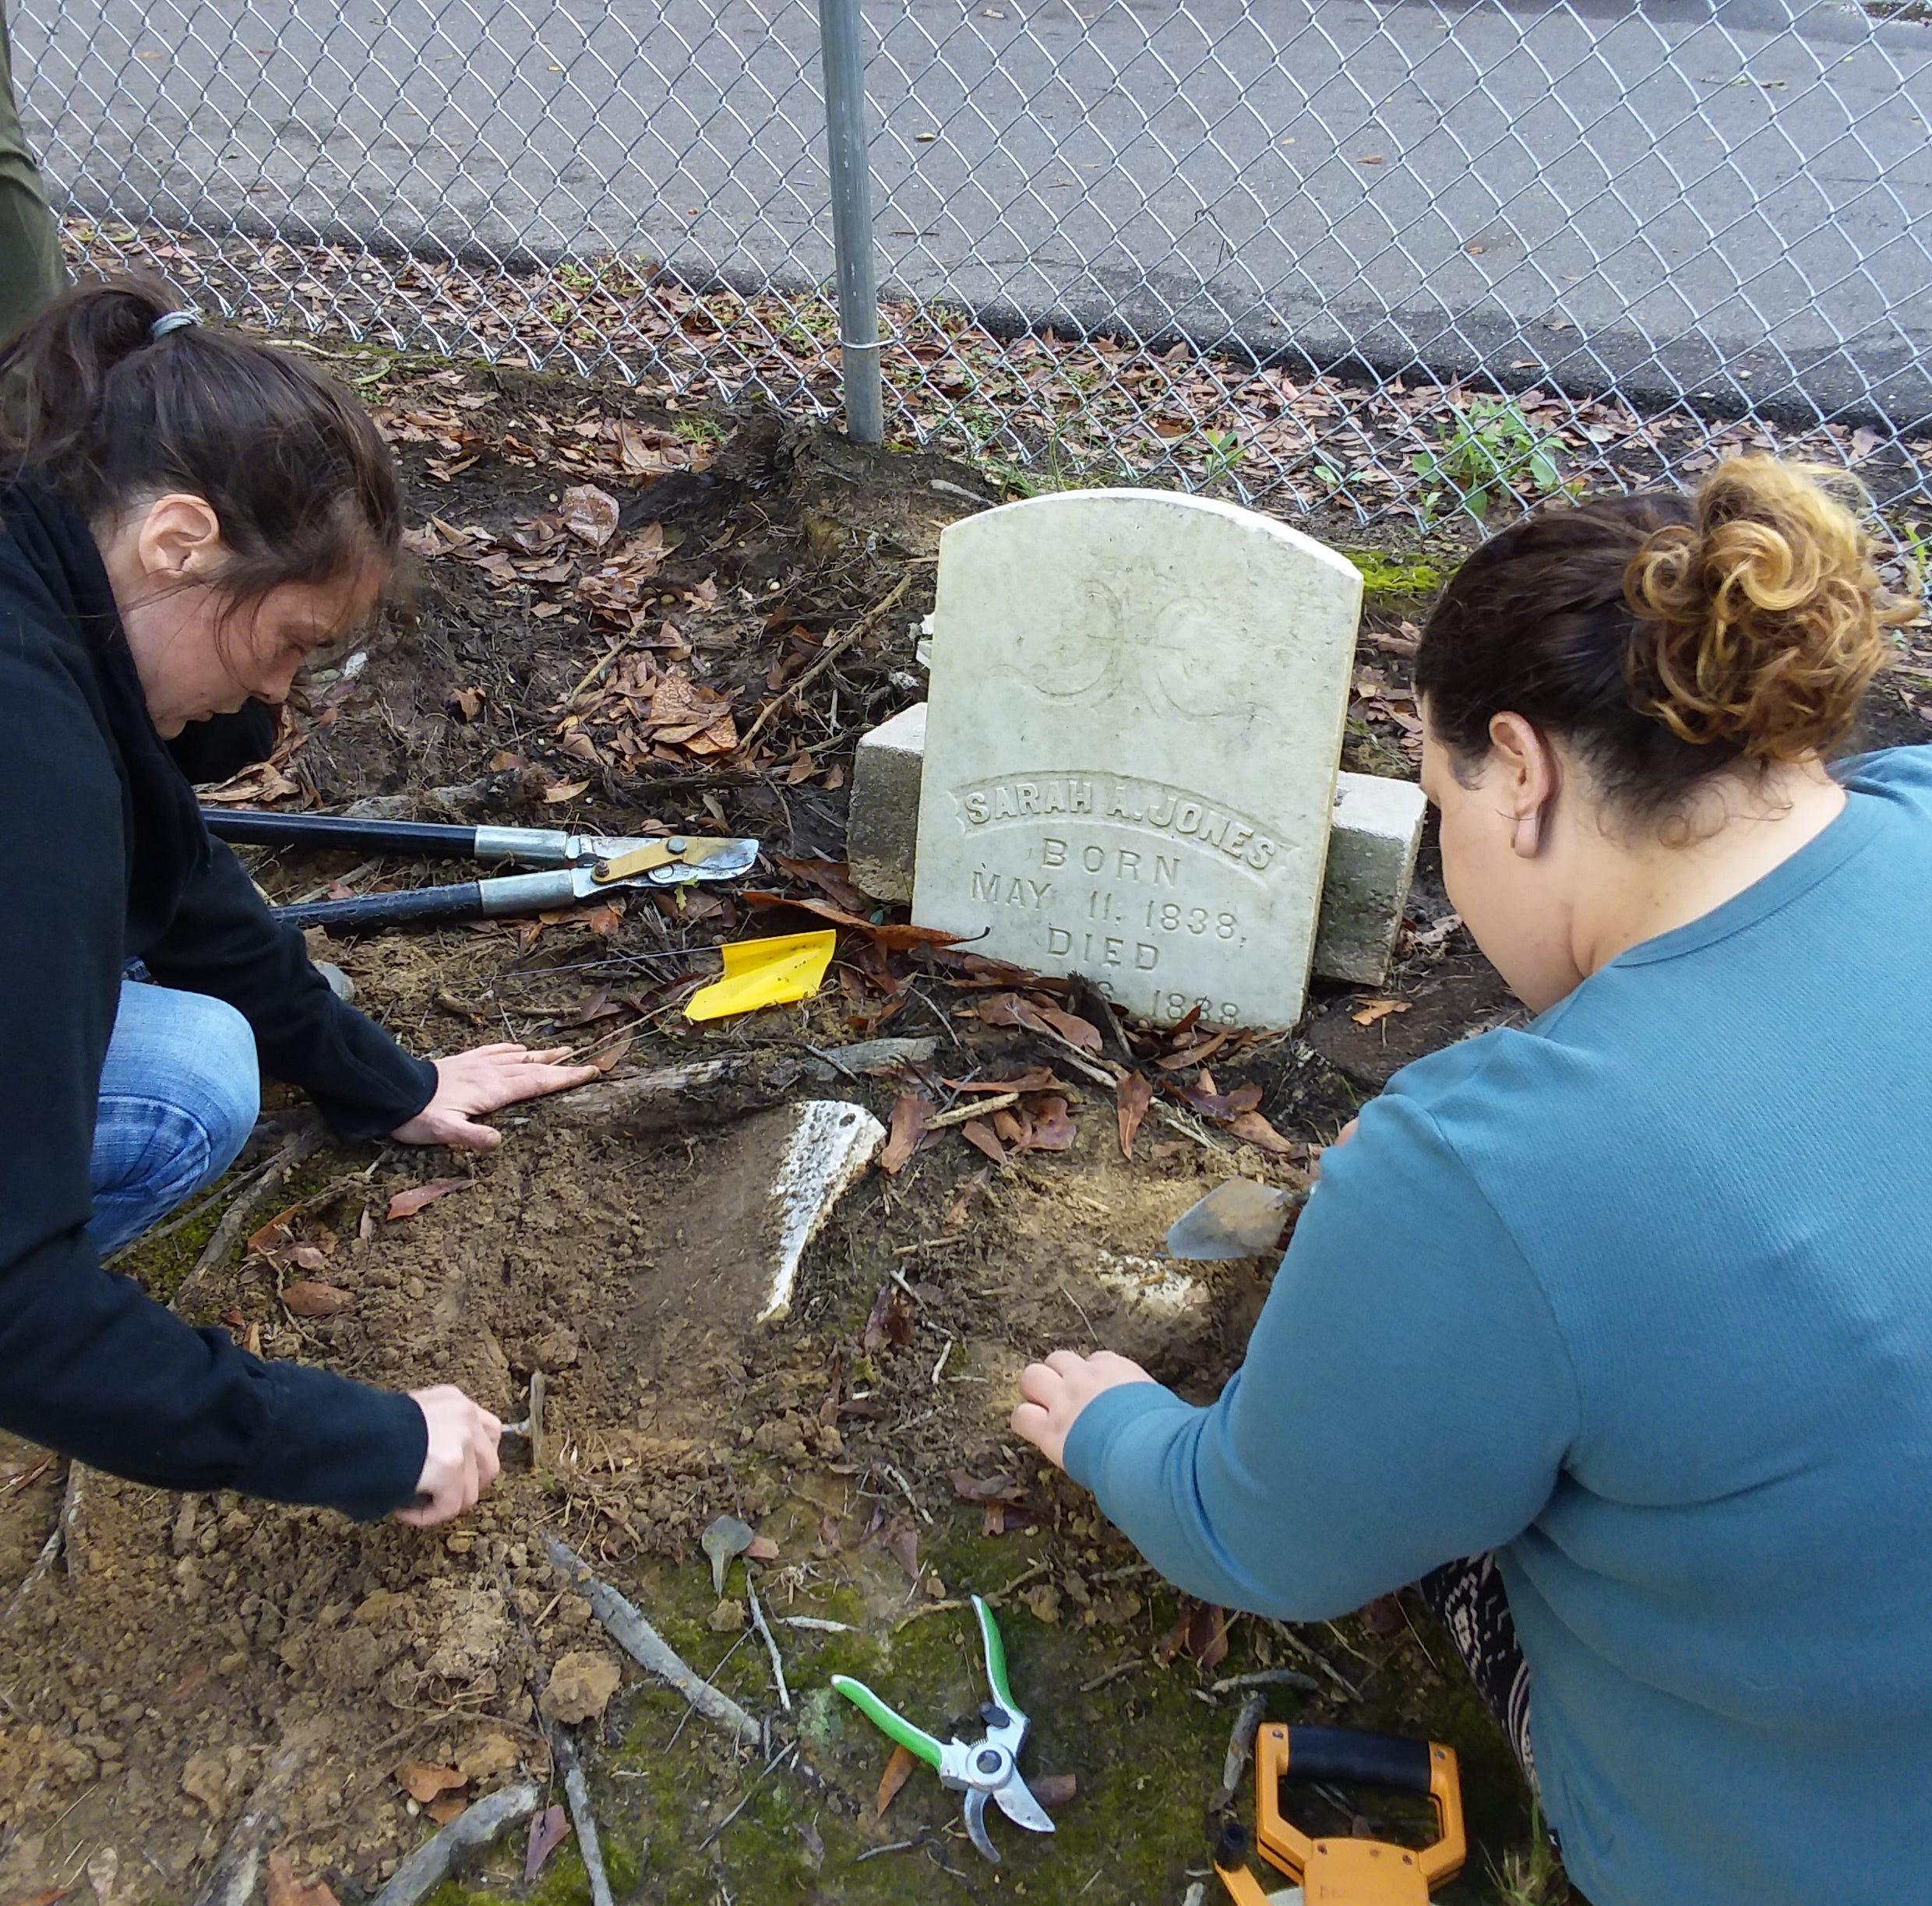 Cemetery detectives: Radar, records unearth clues to Hattiesburg's past. What did they find?